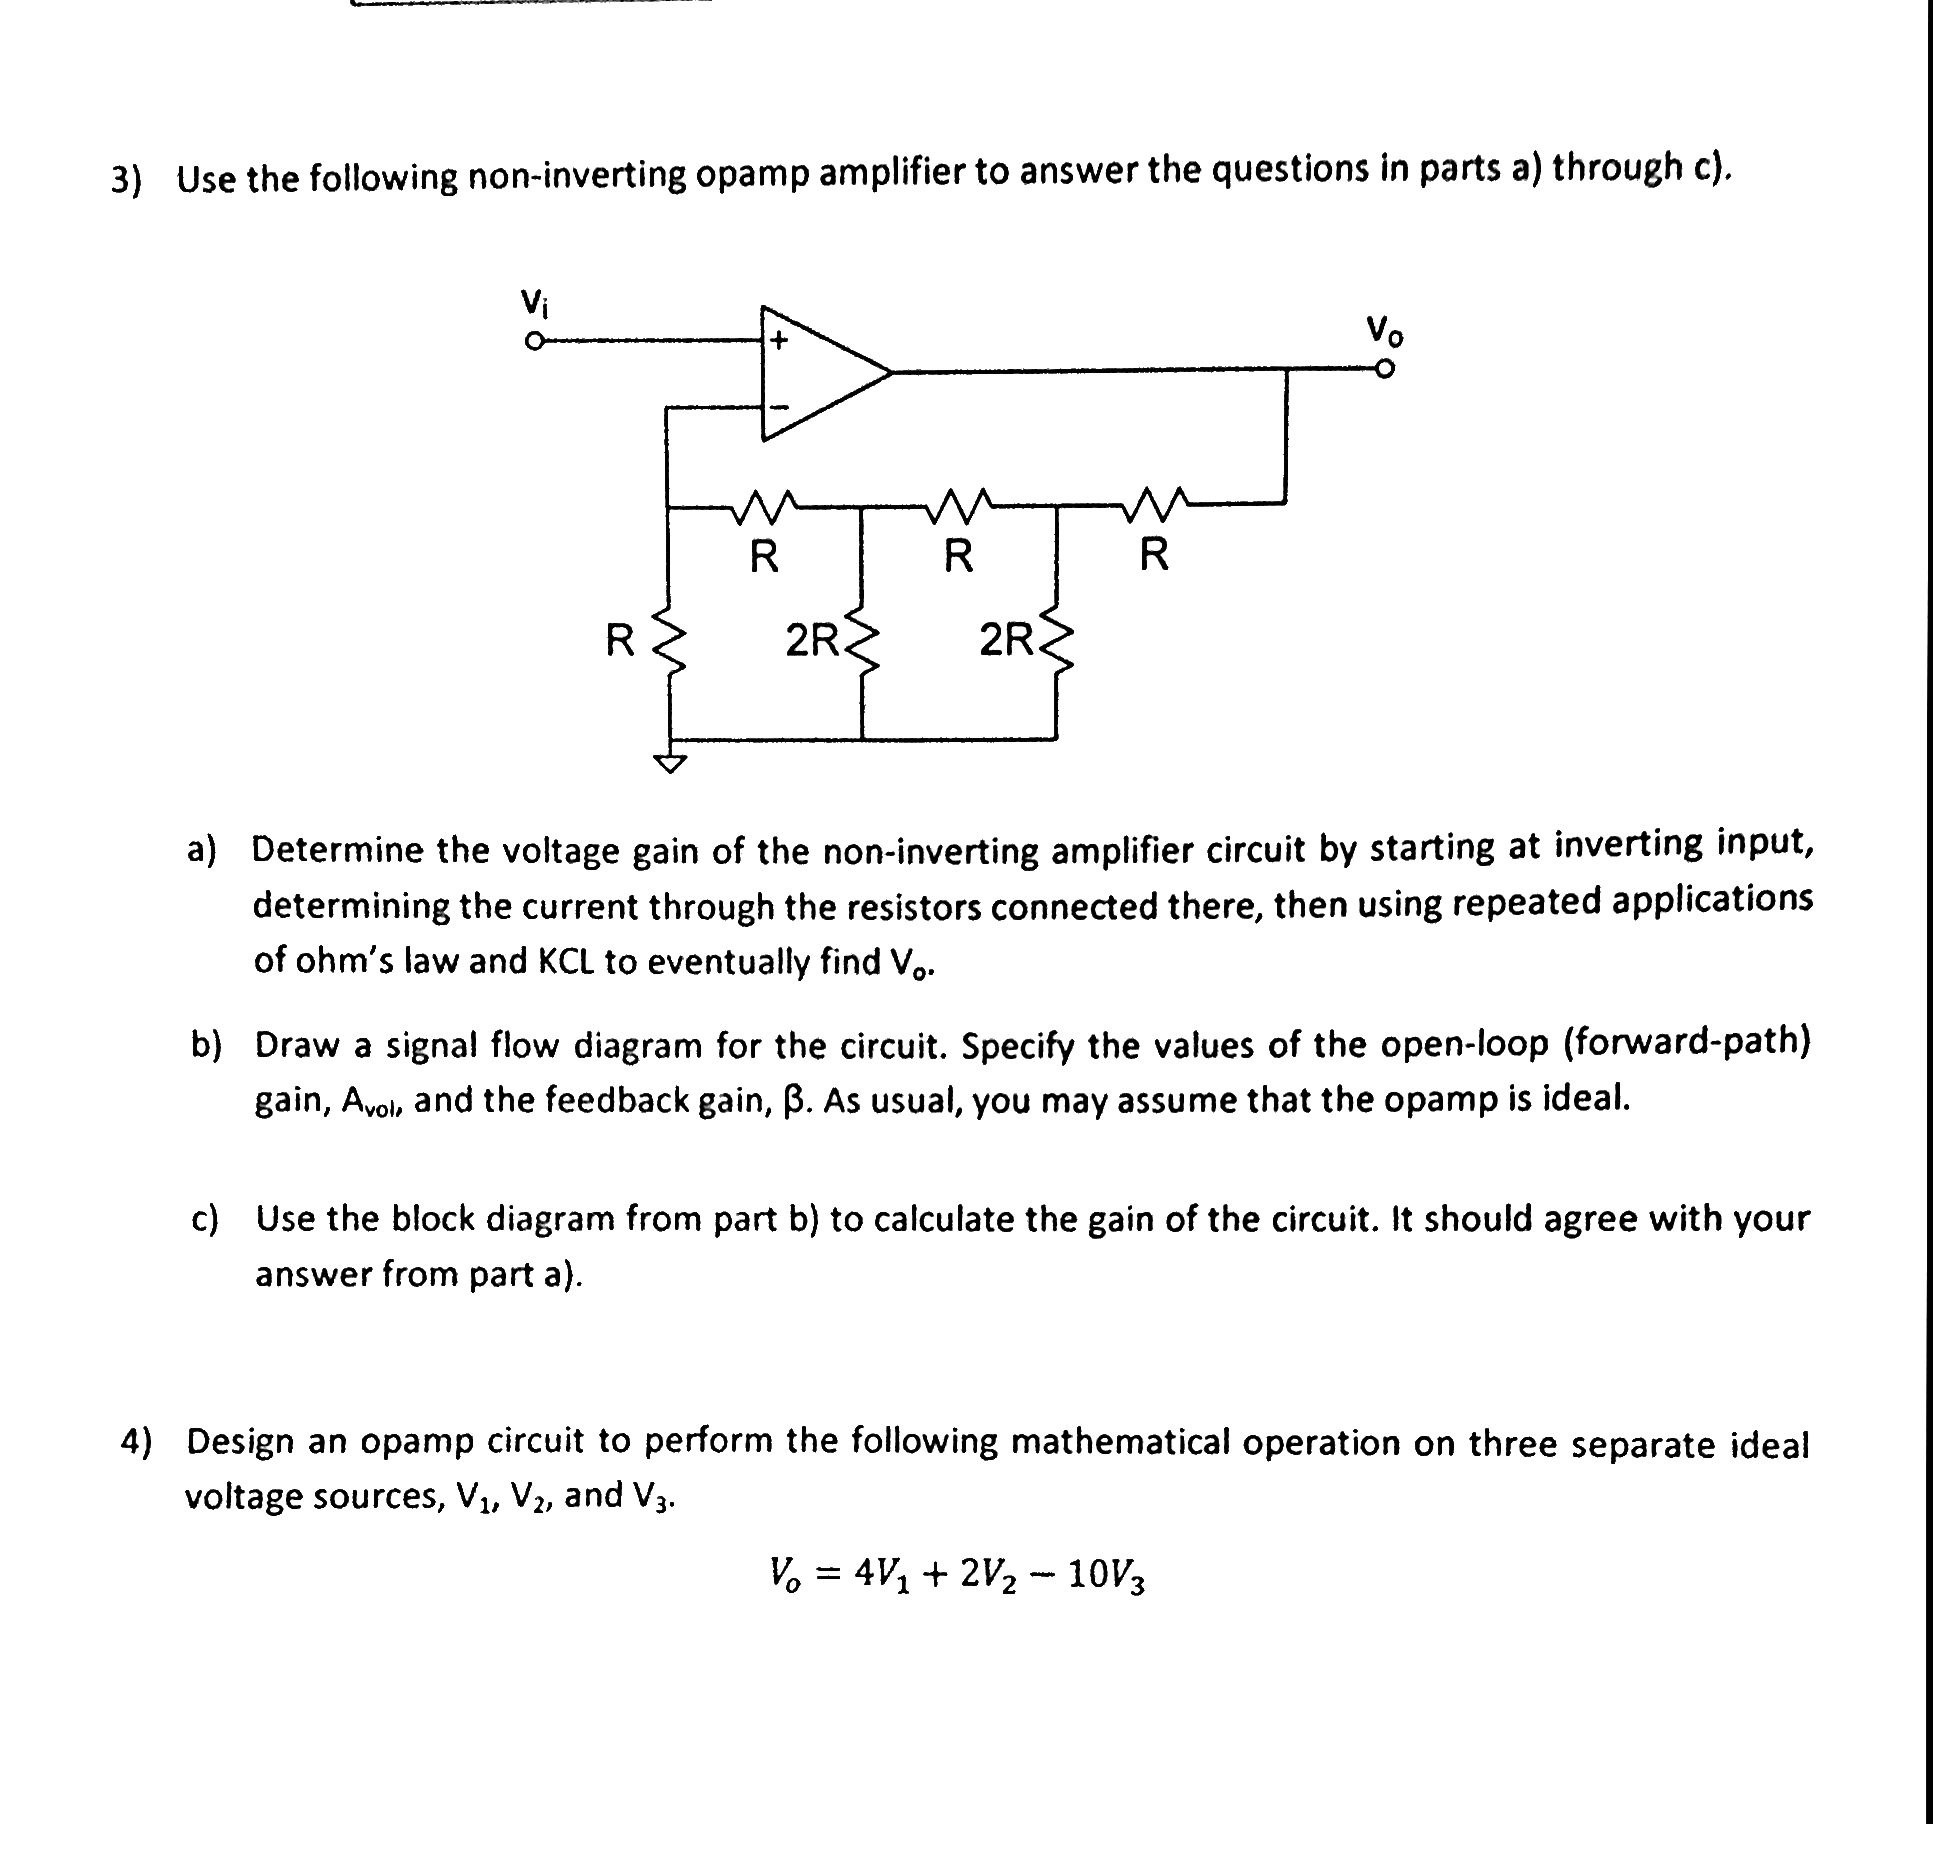 Noninverting Amplifier Equation Op Amp Opamps In A Loop Electrical Engineering Stack Exchange Question Use The Following Non Inverting Opamp To Answer Questions Parts Through